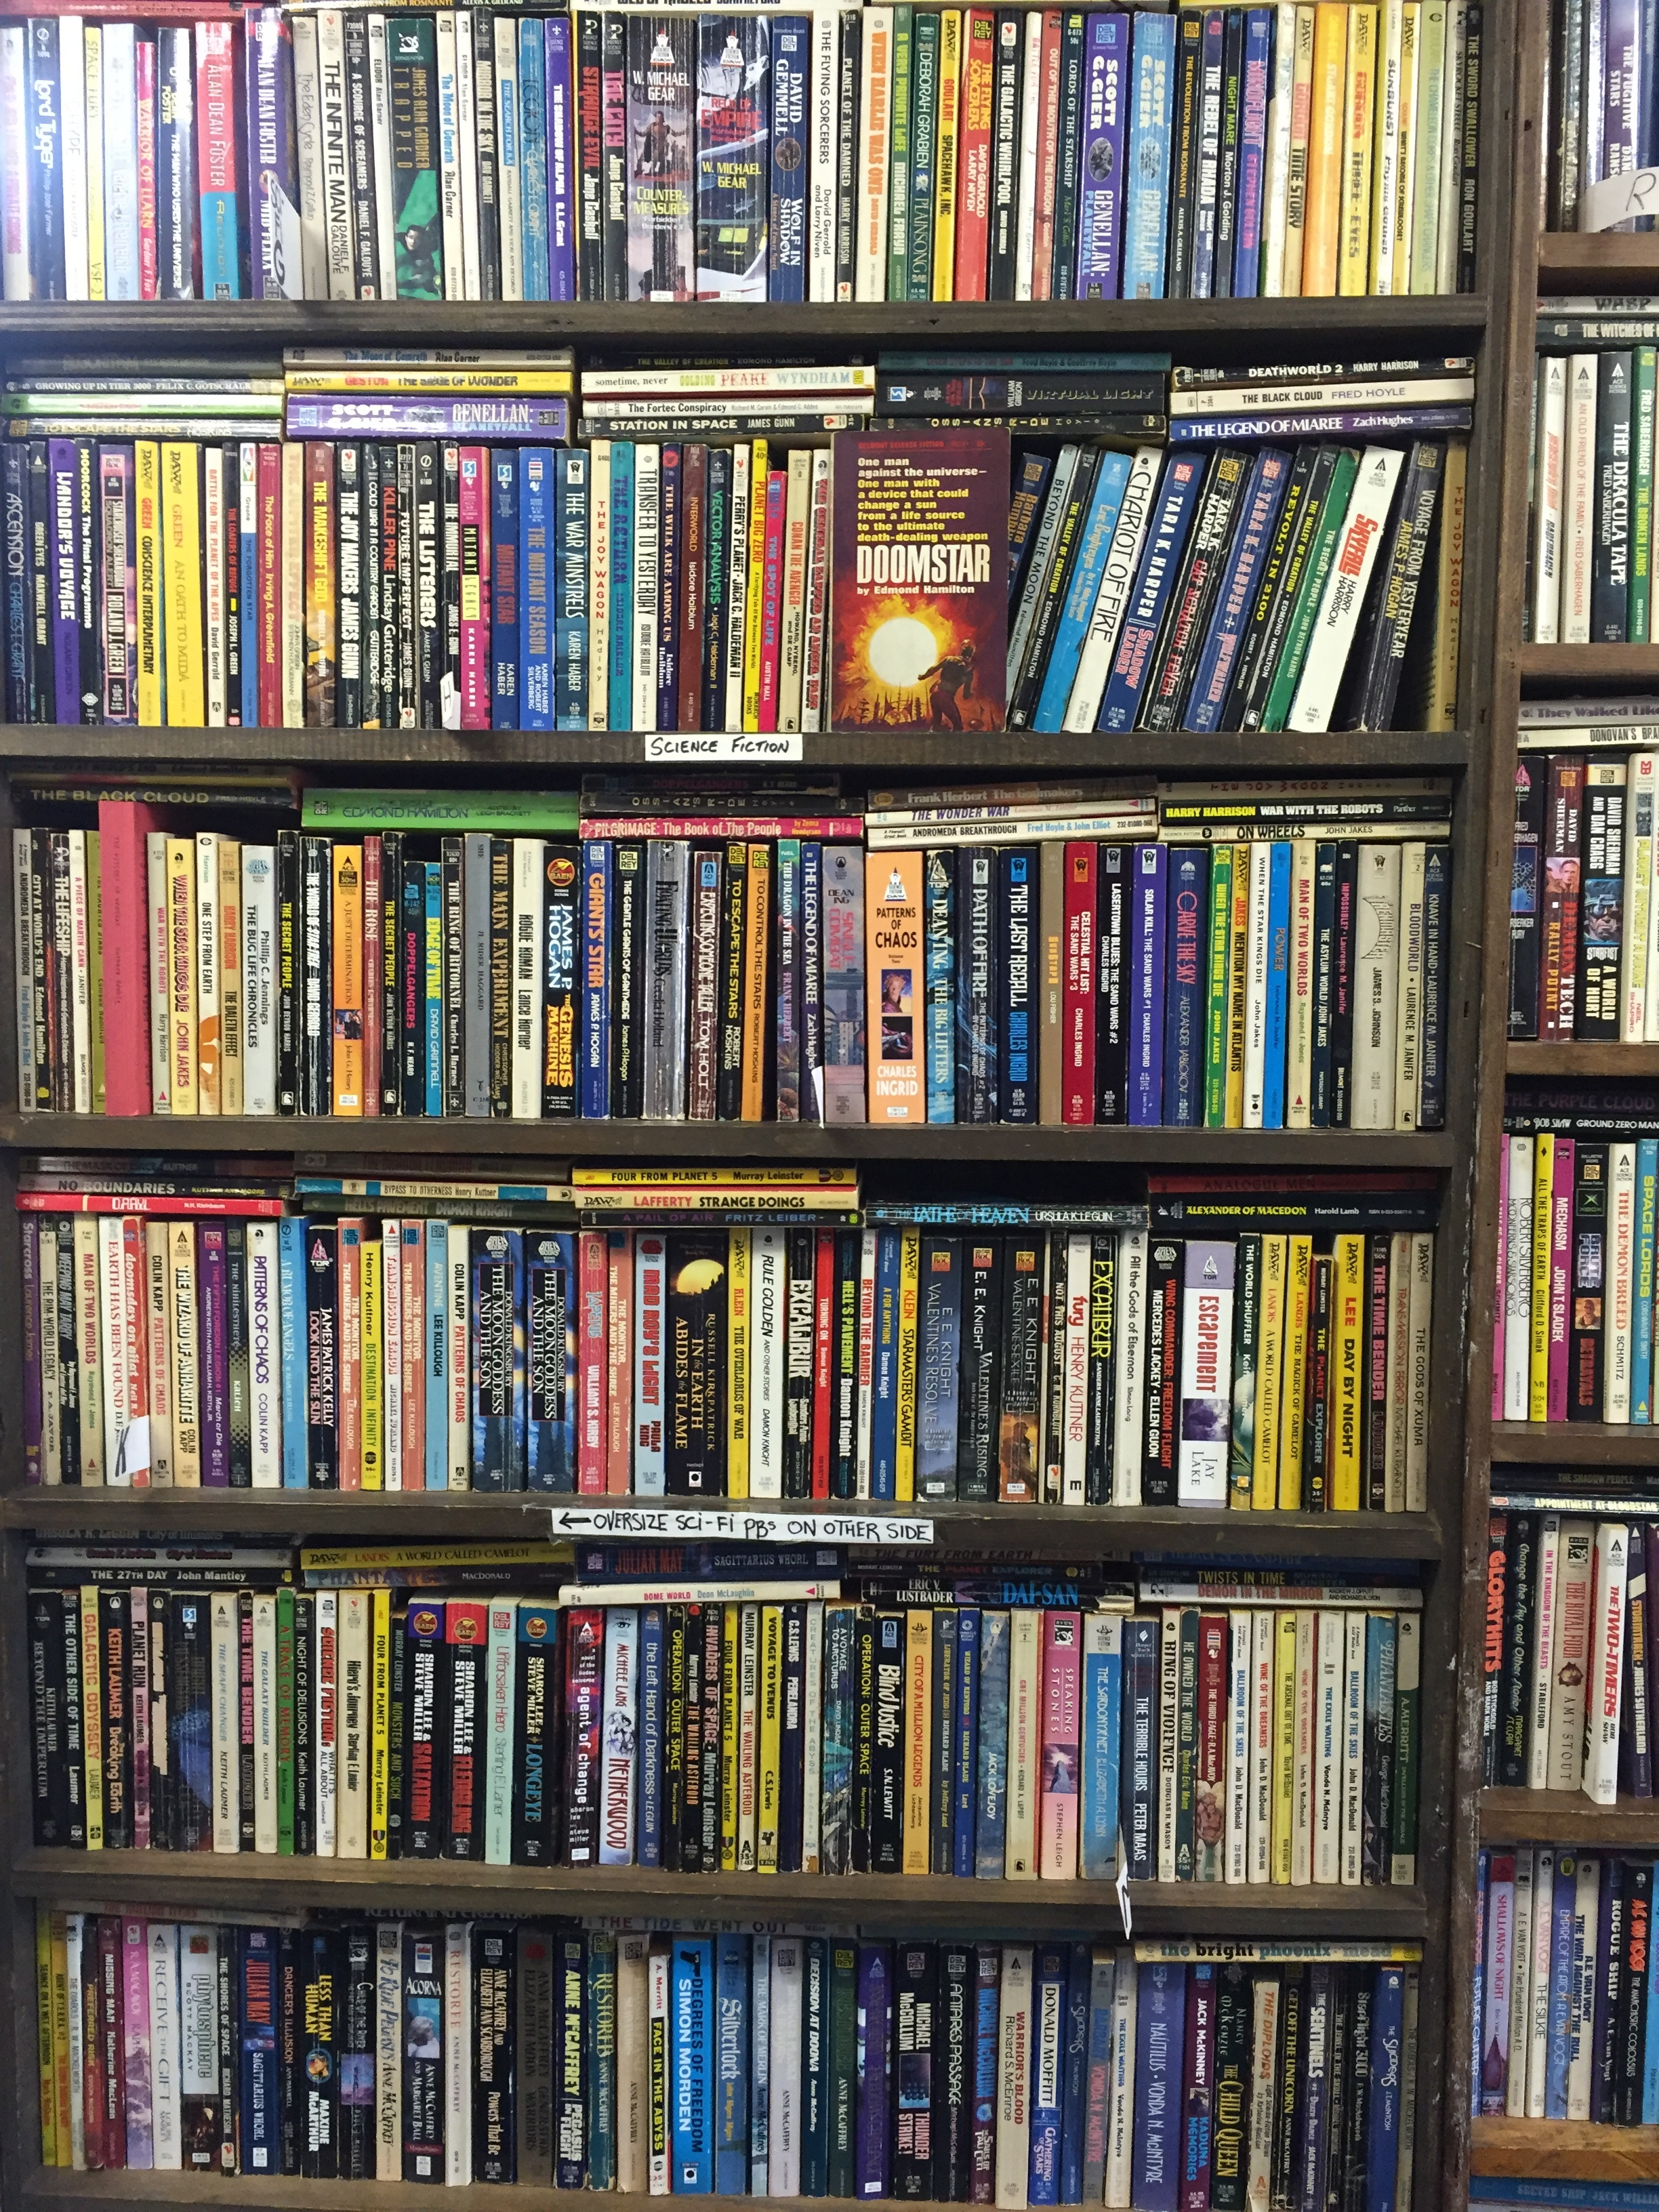 The Sci-Fi Wall at Idle Time Books